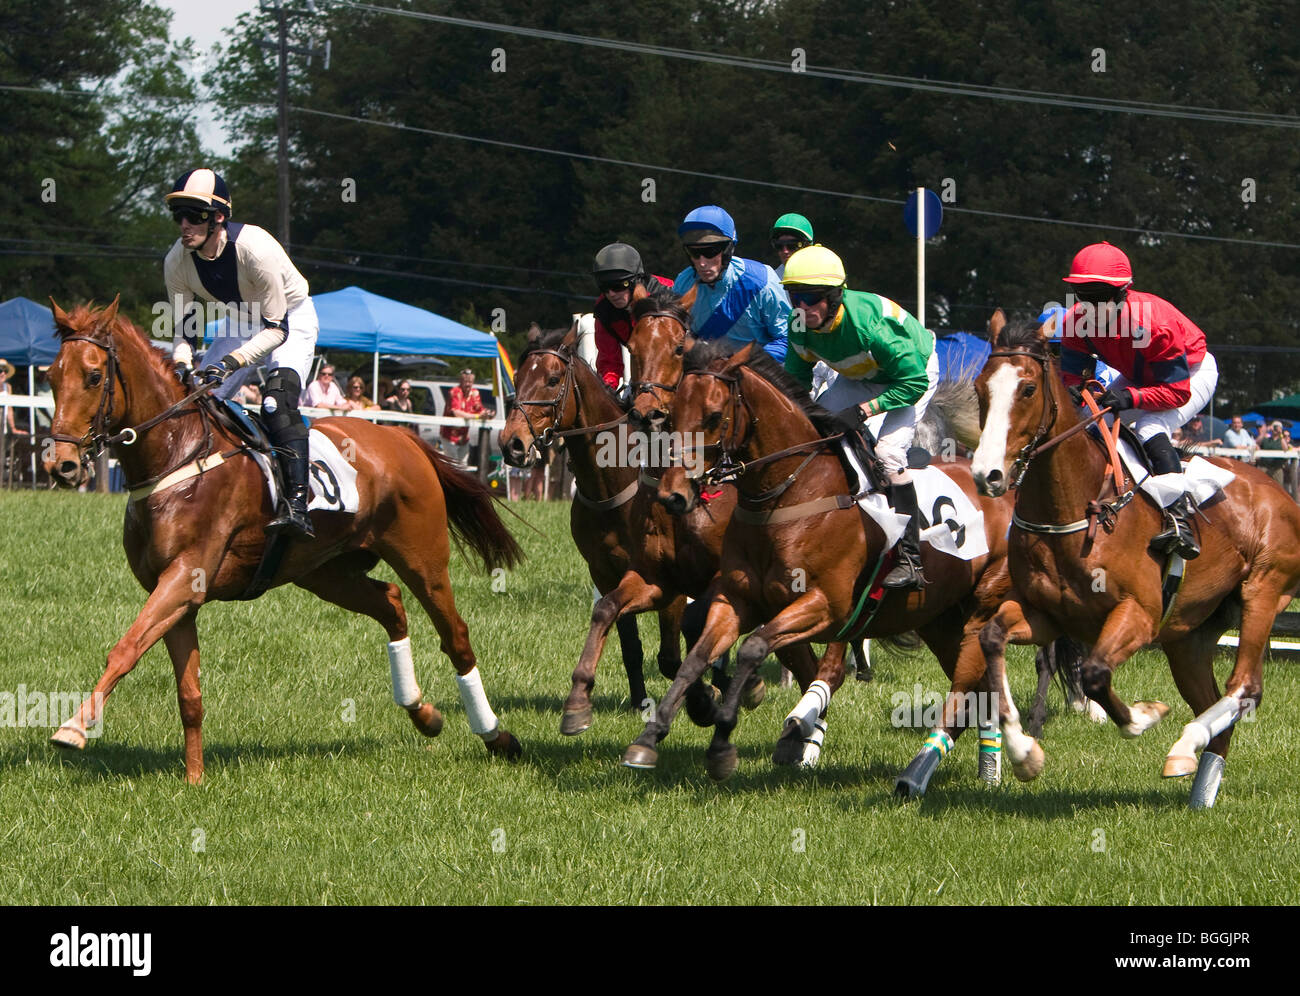 The 2009 Foxfield Races were held at the Foxfield Race Course in Charlottesville, Virginia, USA. - Stock Image